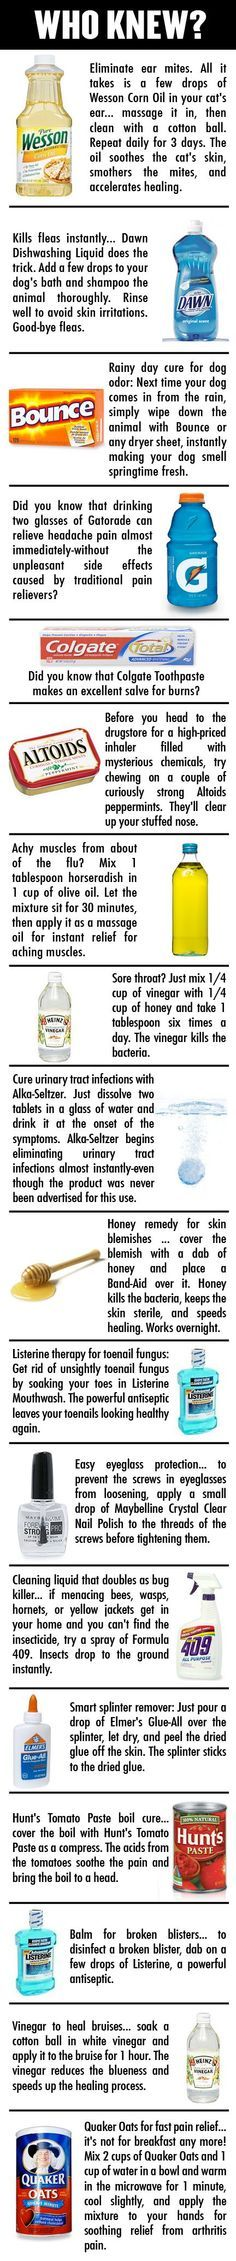 I Did Not Know That! Eliminating Ear Mites, Skin Blemishes, New Bug Killers, Pain Relief w/out Asprin & more..